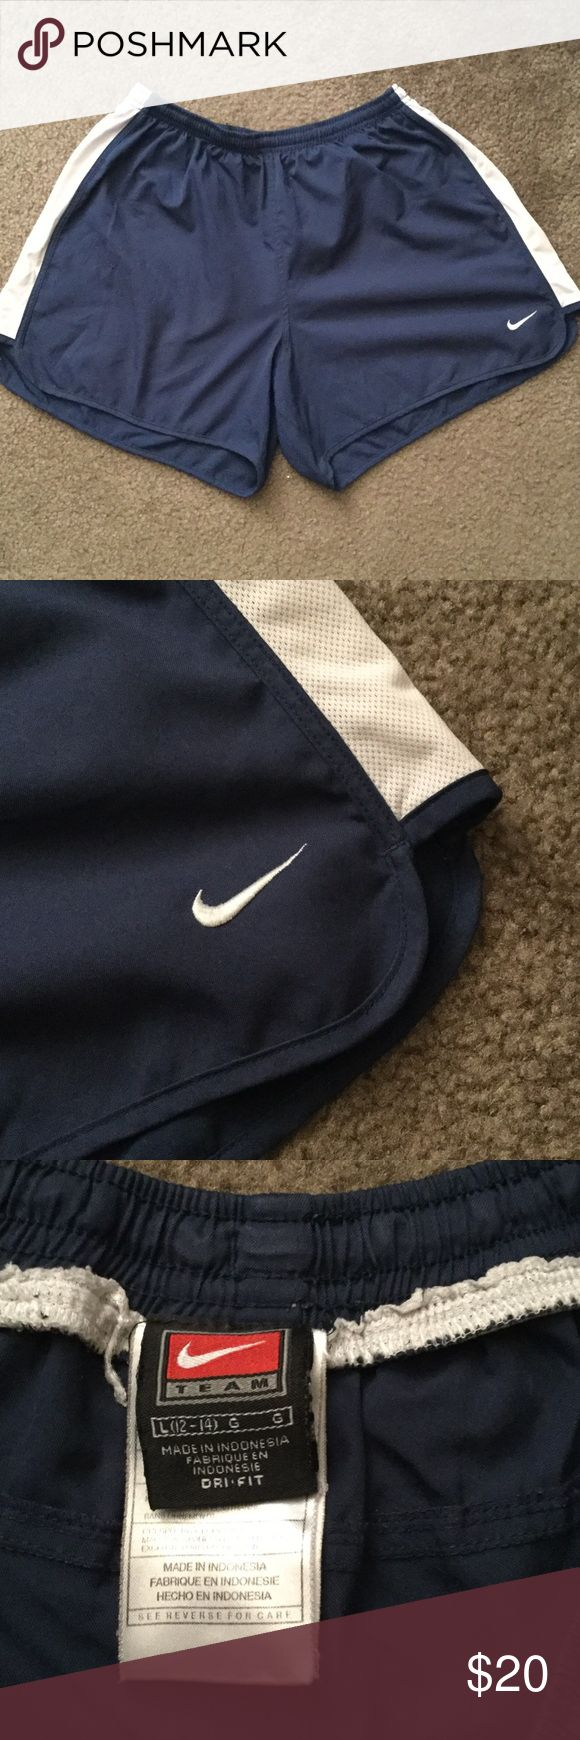 Nike soccer shorts Navy blue and white. In good condition, however I cut the lining out due to it being very uncomfortable playing soccer with the lining in. Lots of life left in these! Nike Shorts